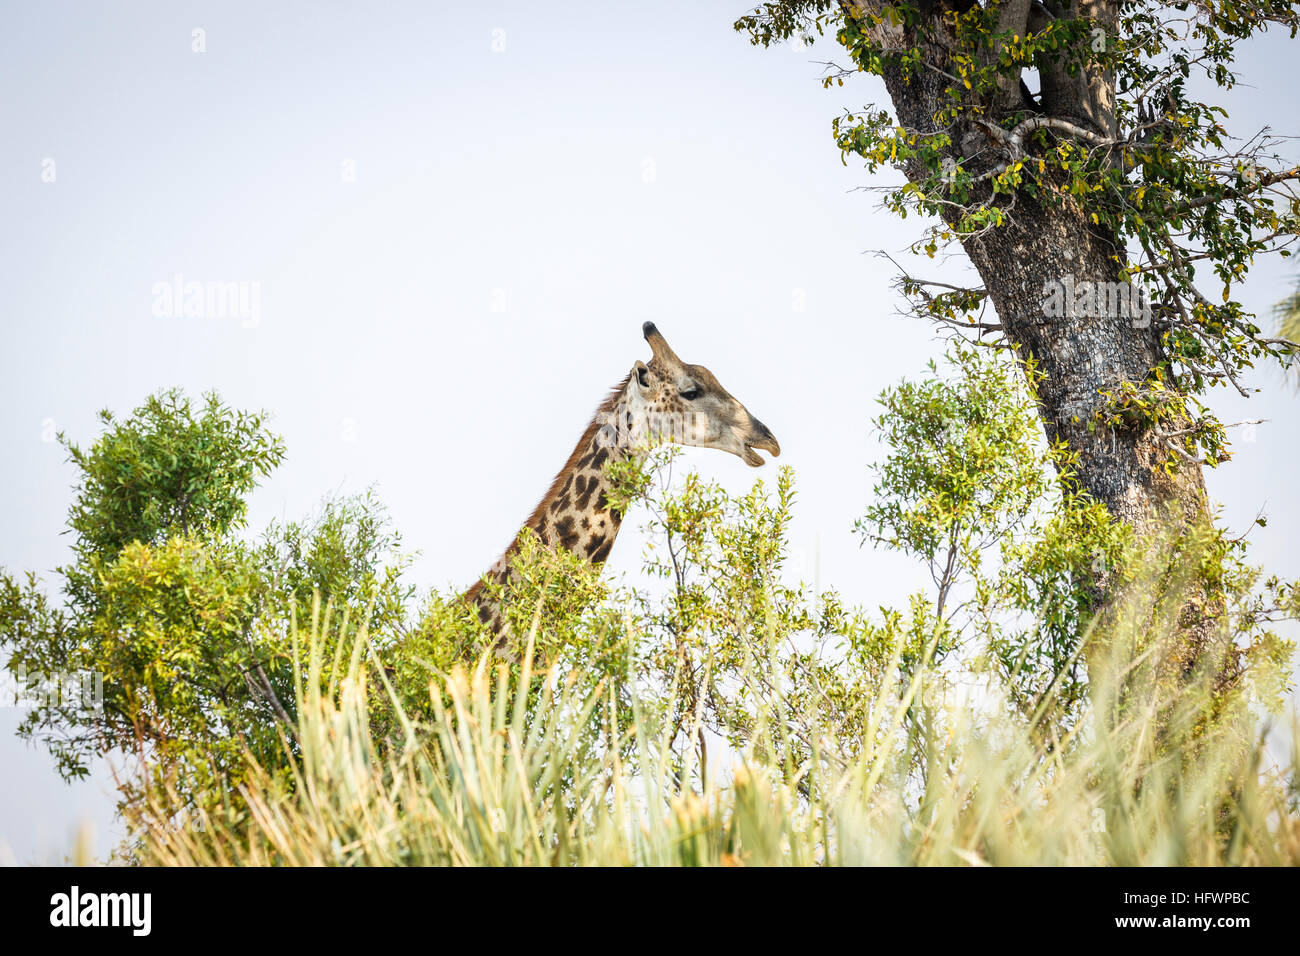 Head of southern giraffe (Giraffa camelopardalis), Sandibe Camp, adjacent to the Moremi Game Reserve, Okavango Delta, - Stock Image